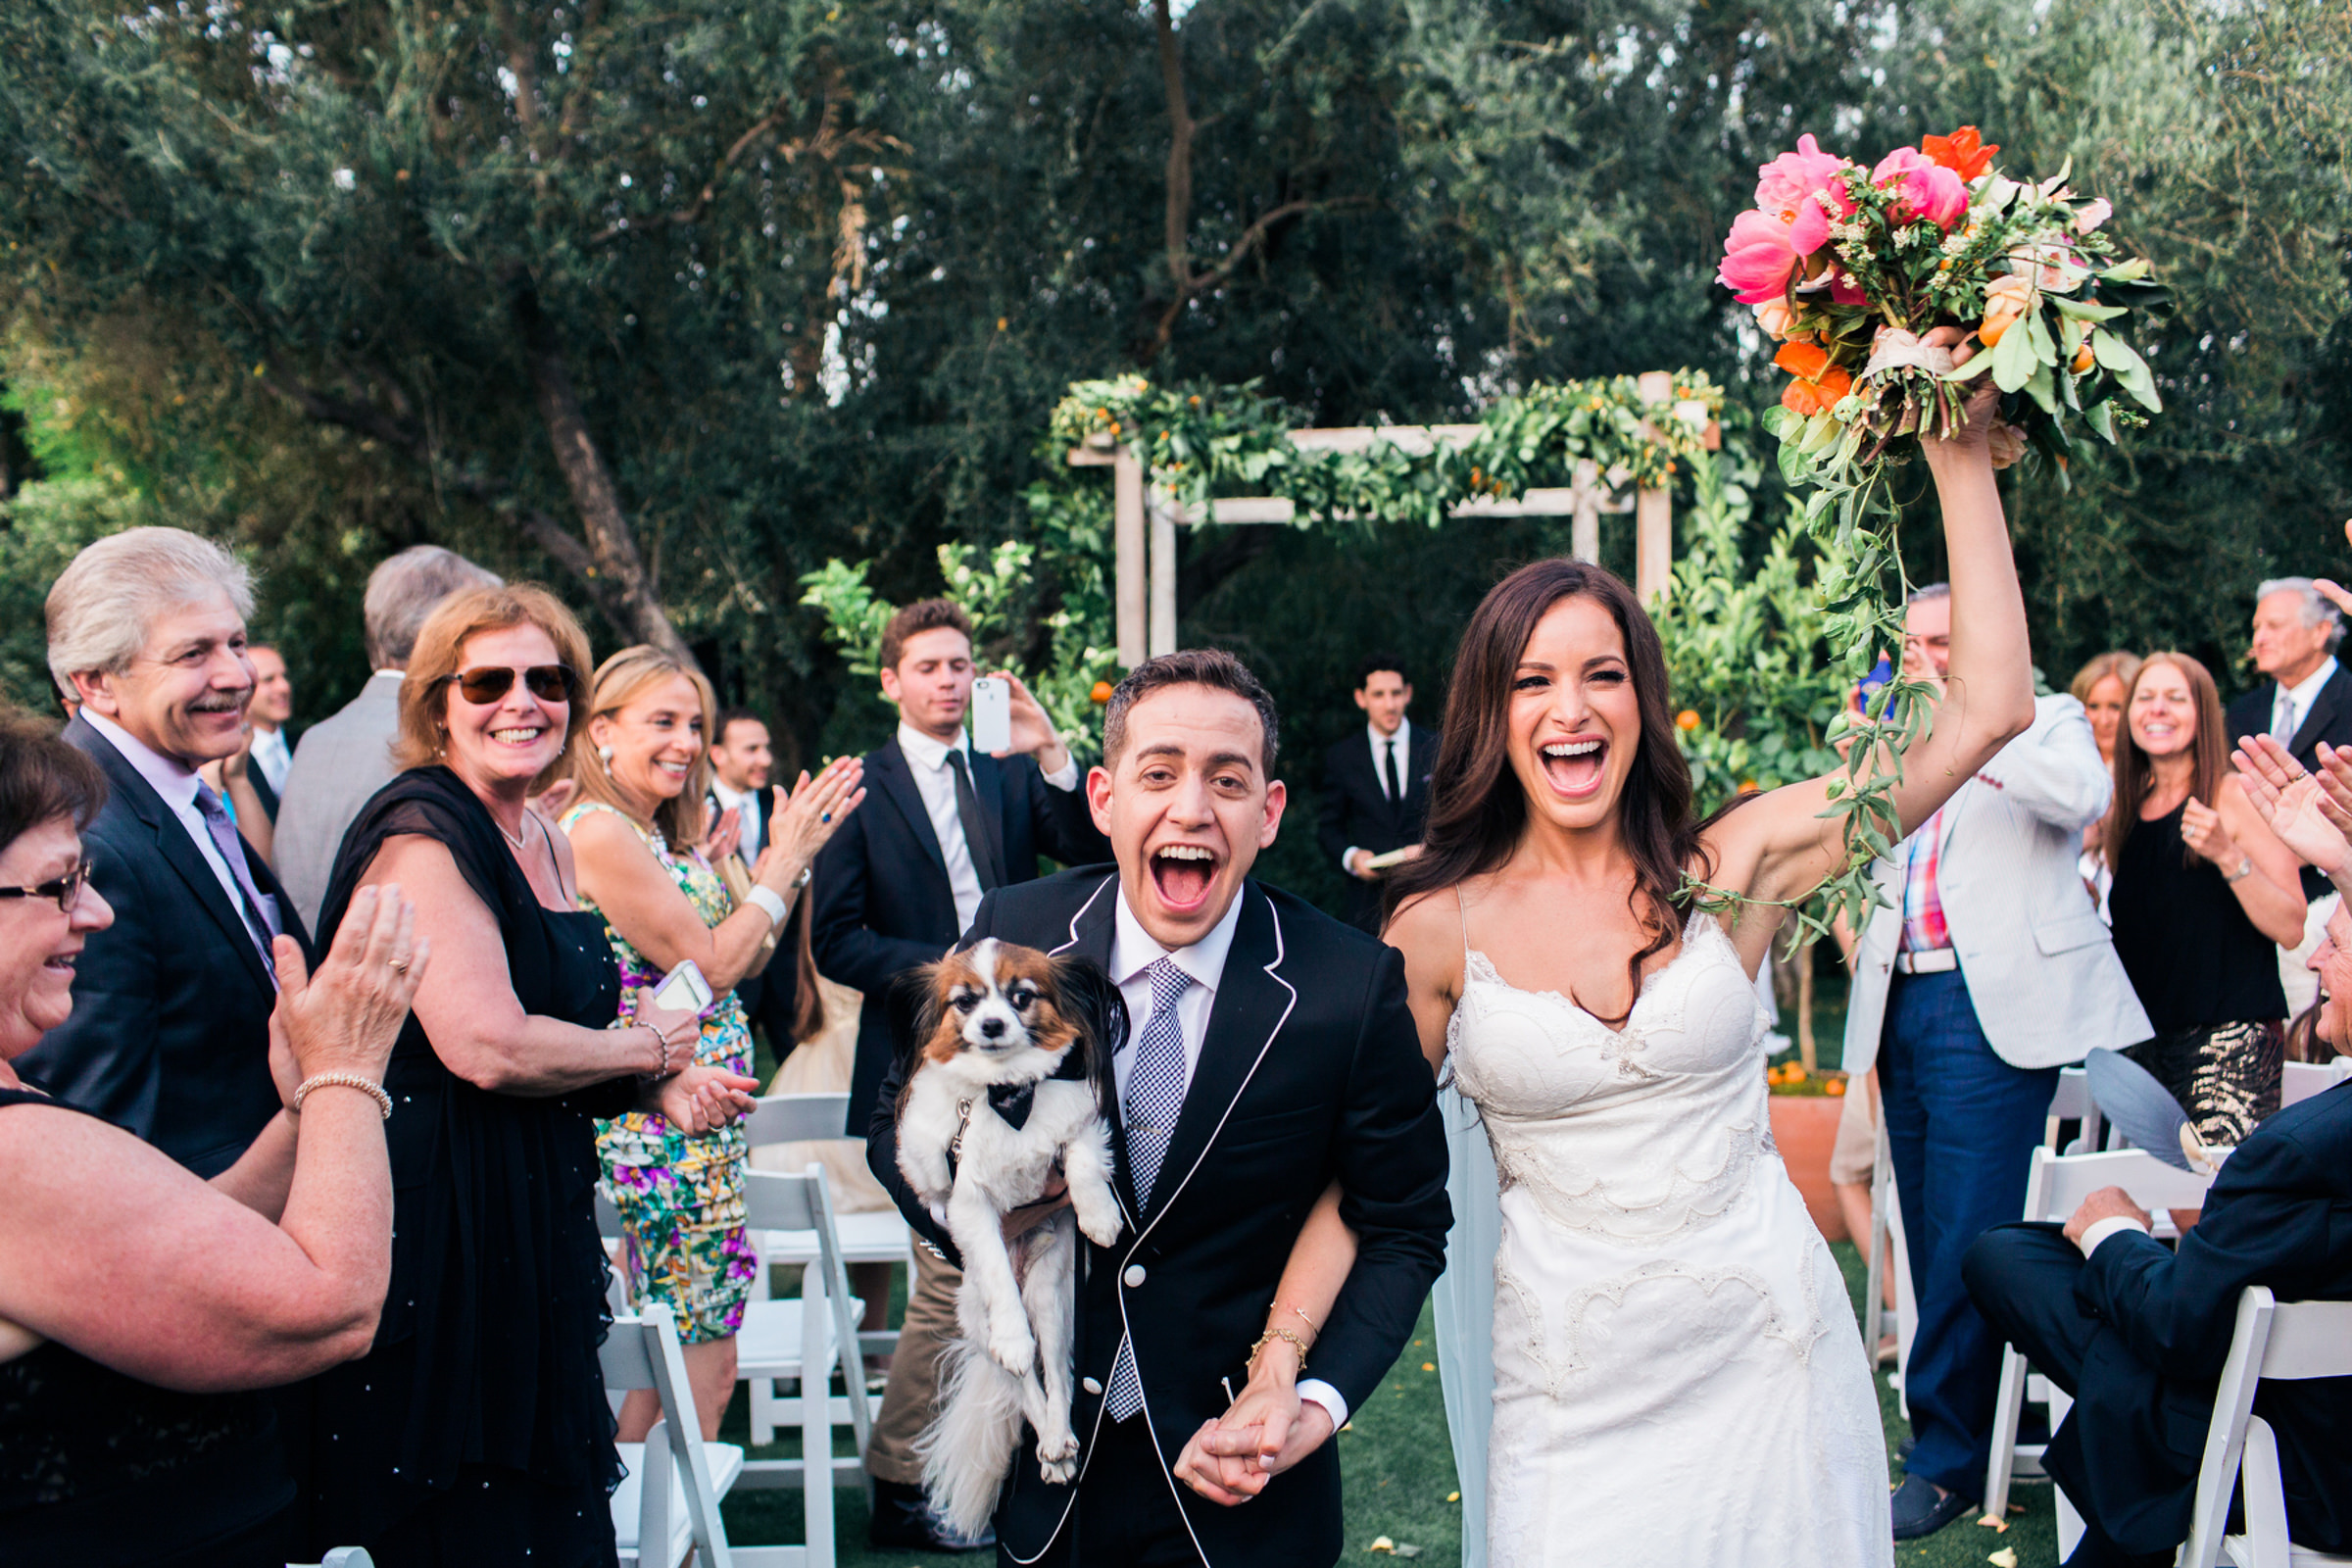 Happy couple processional with puppy - photo by Corbin Gurkin